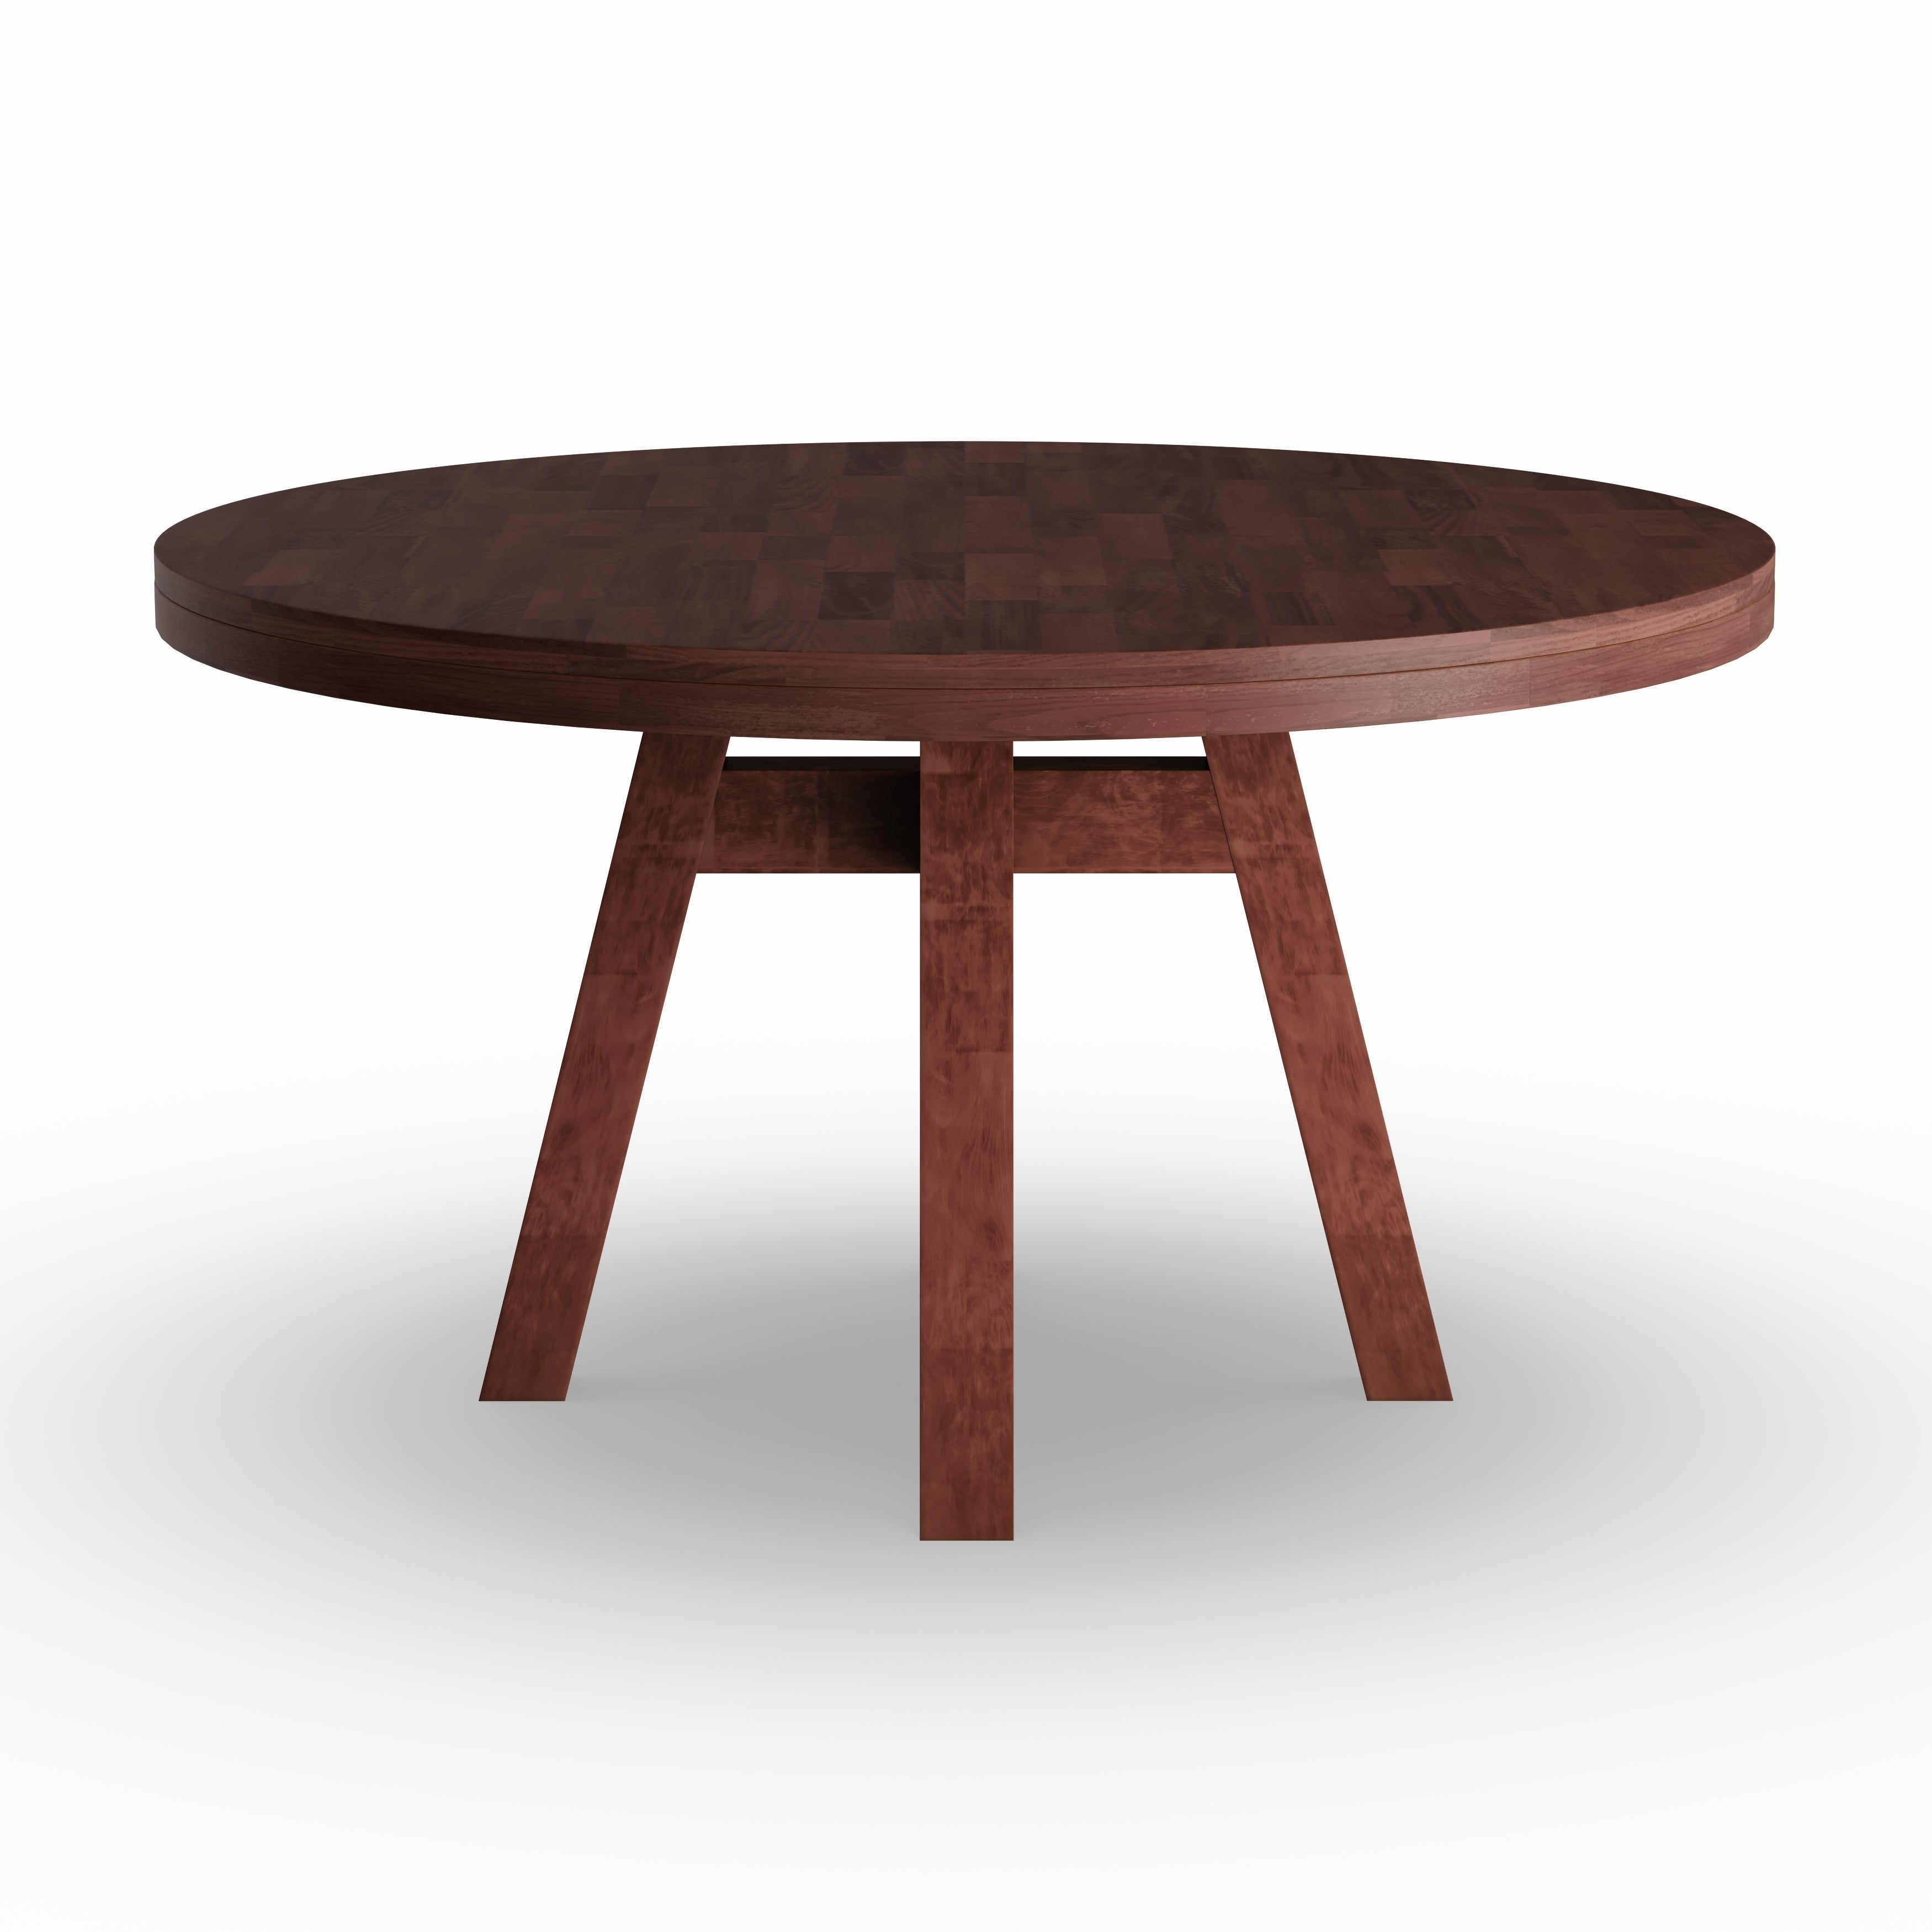 Shop carson carrington bellinge modern solid wood round dining table free shipping today overstock 21490286